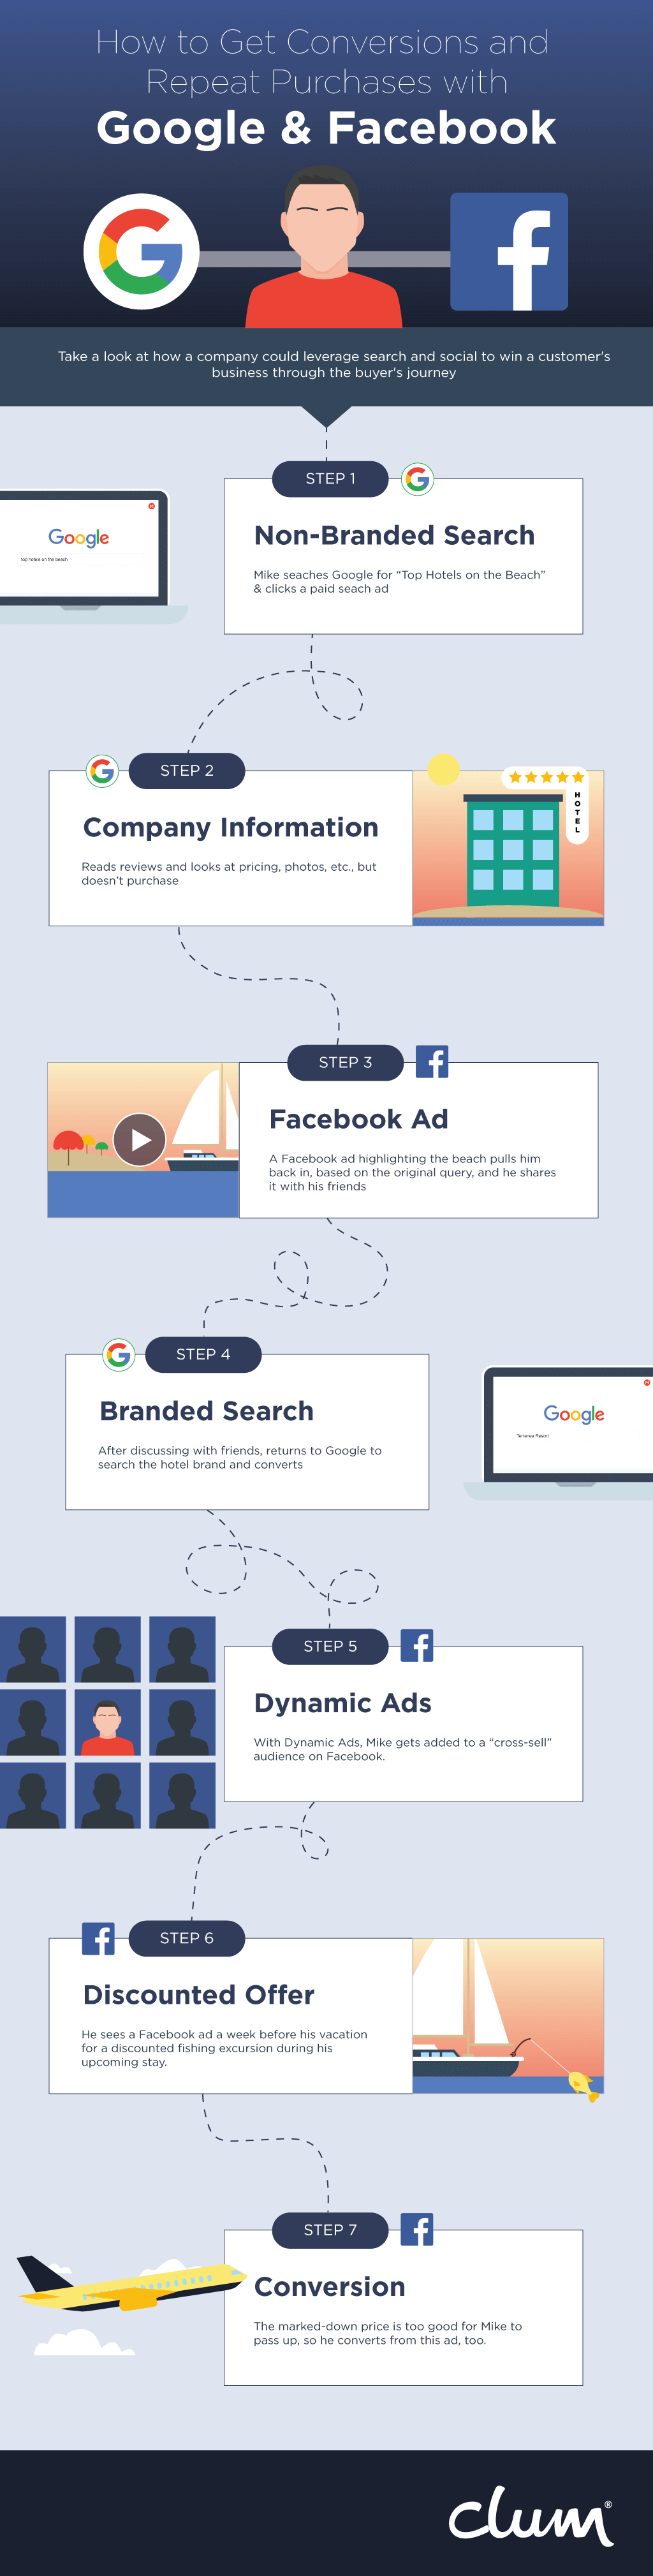 cross-channel-marketing-infographic